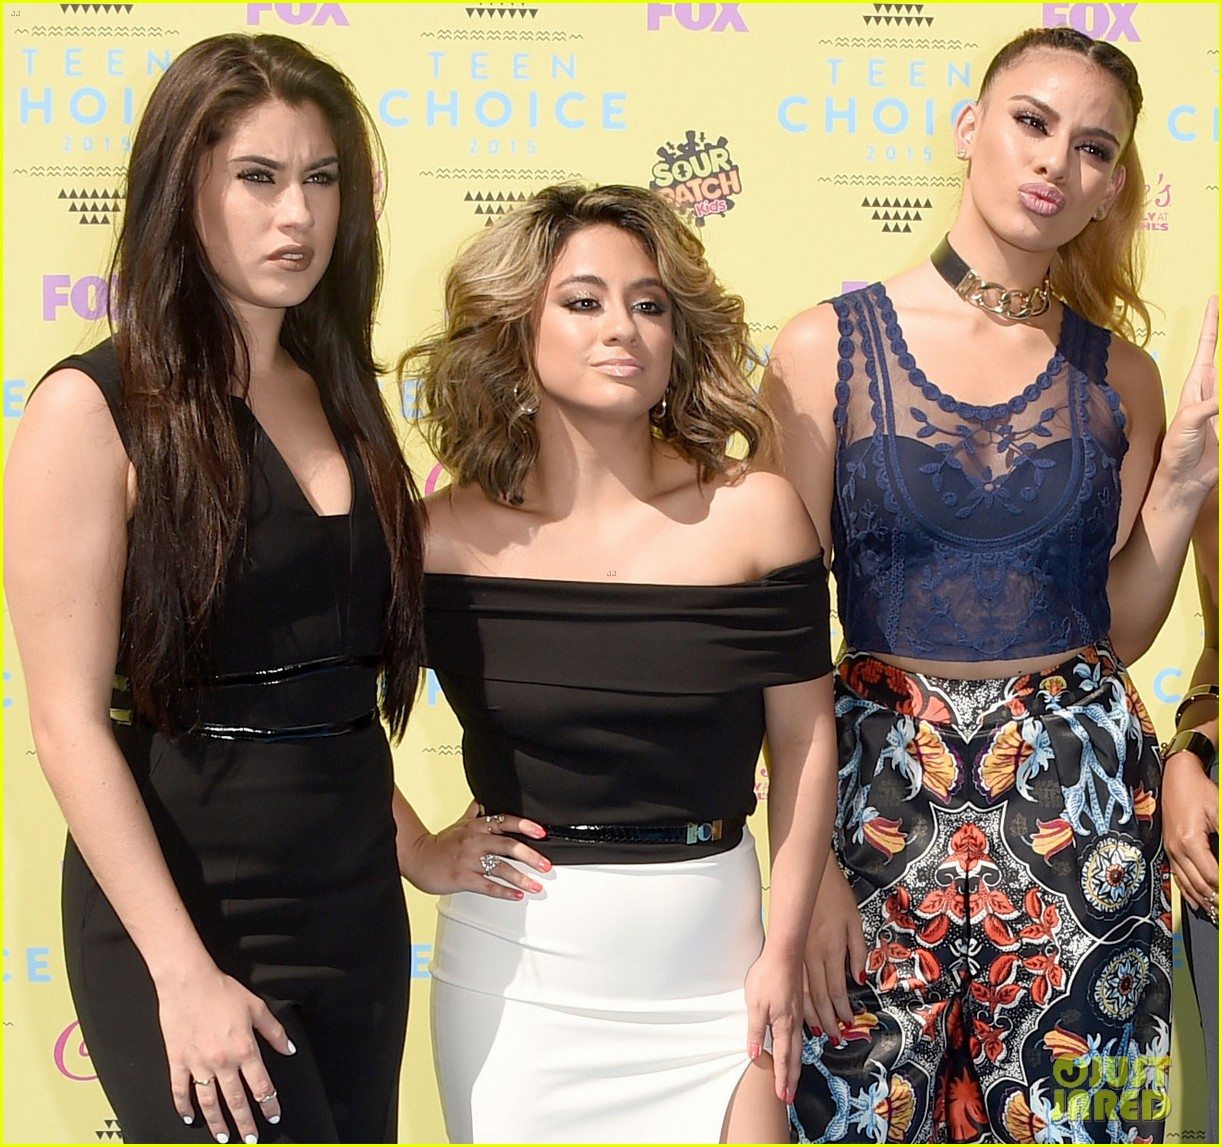 Lauren From Fifth Harmony Brother